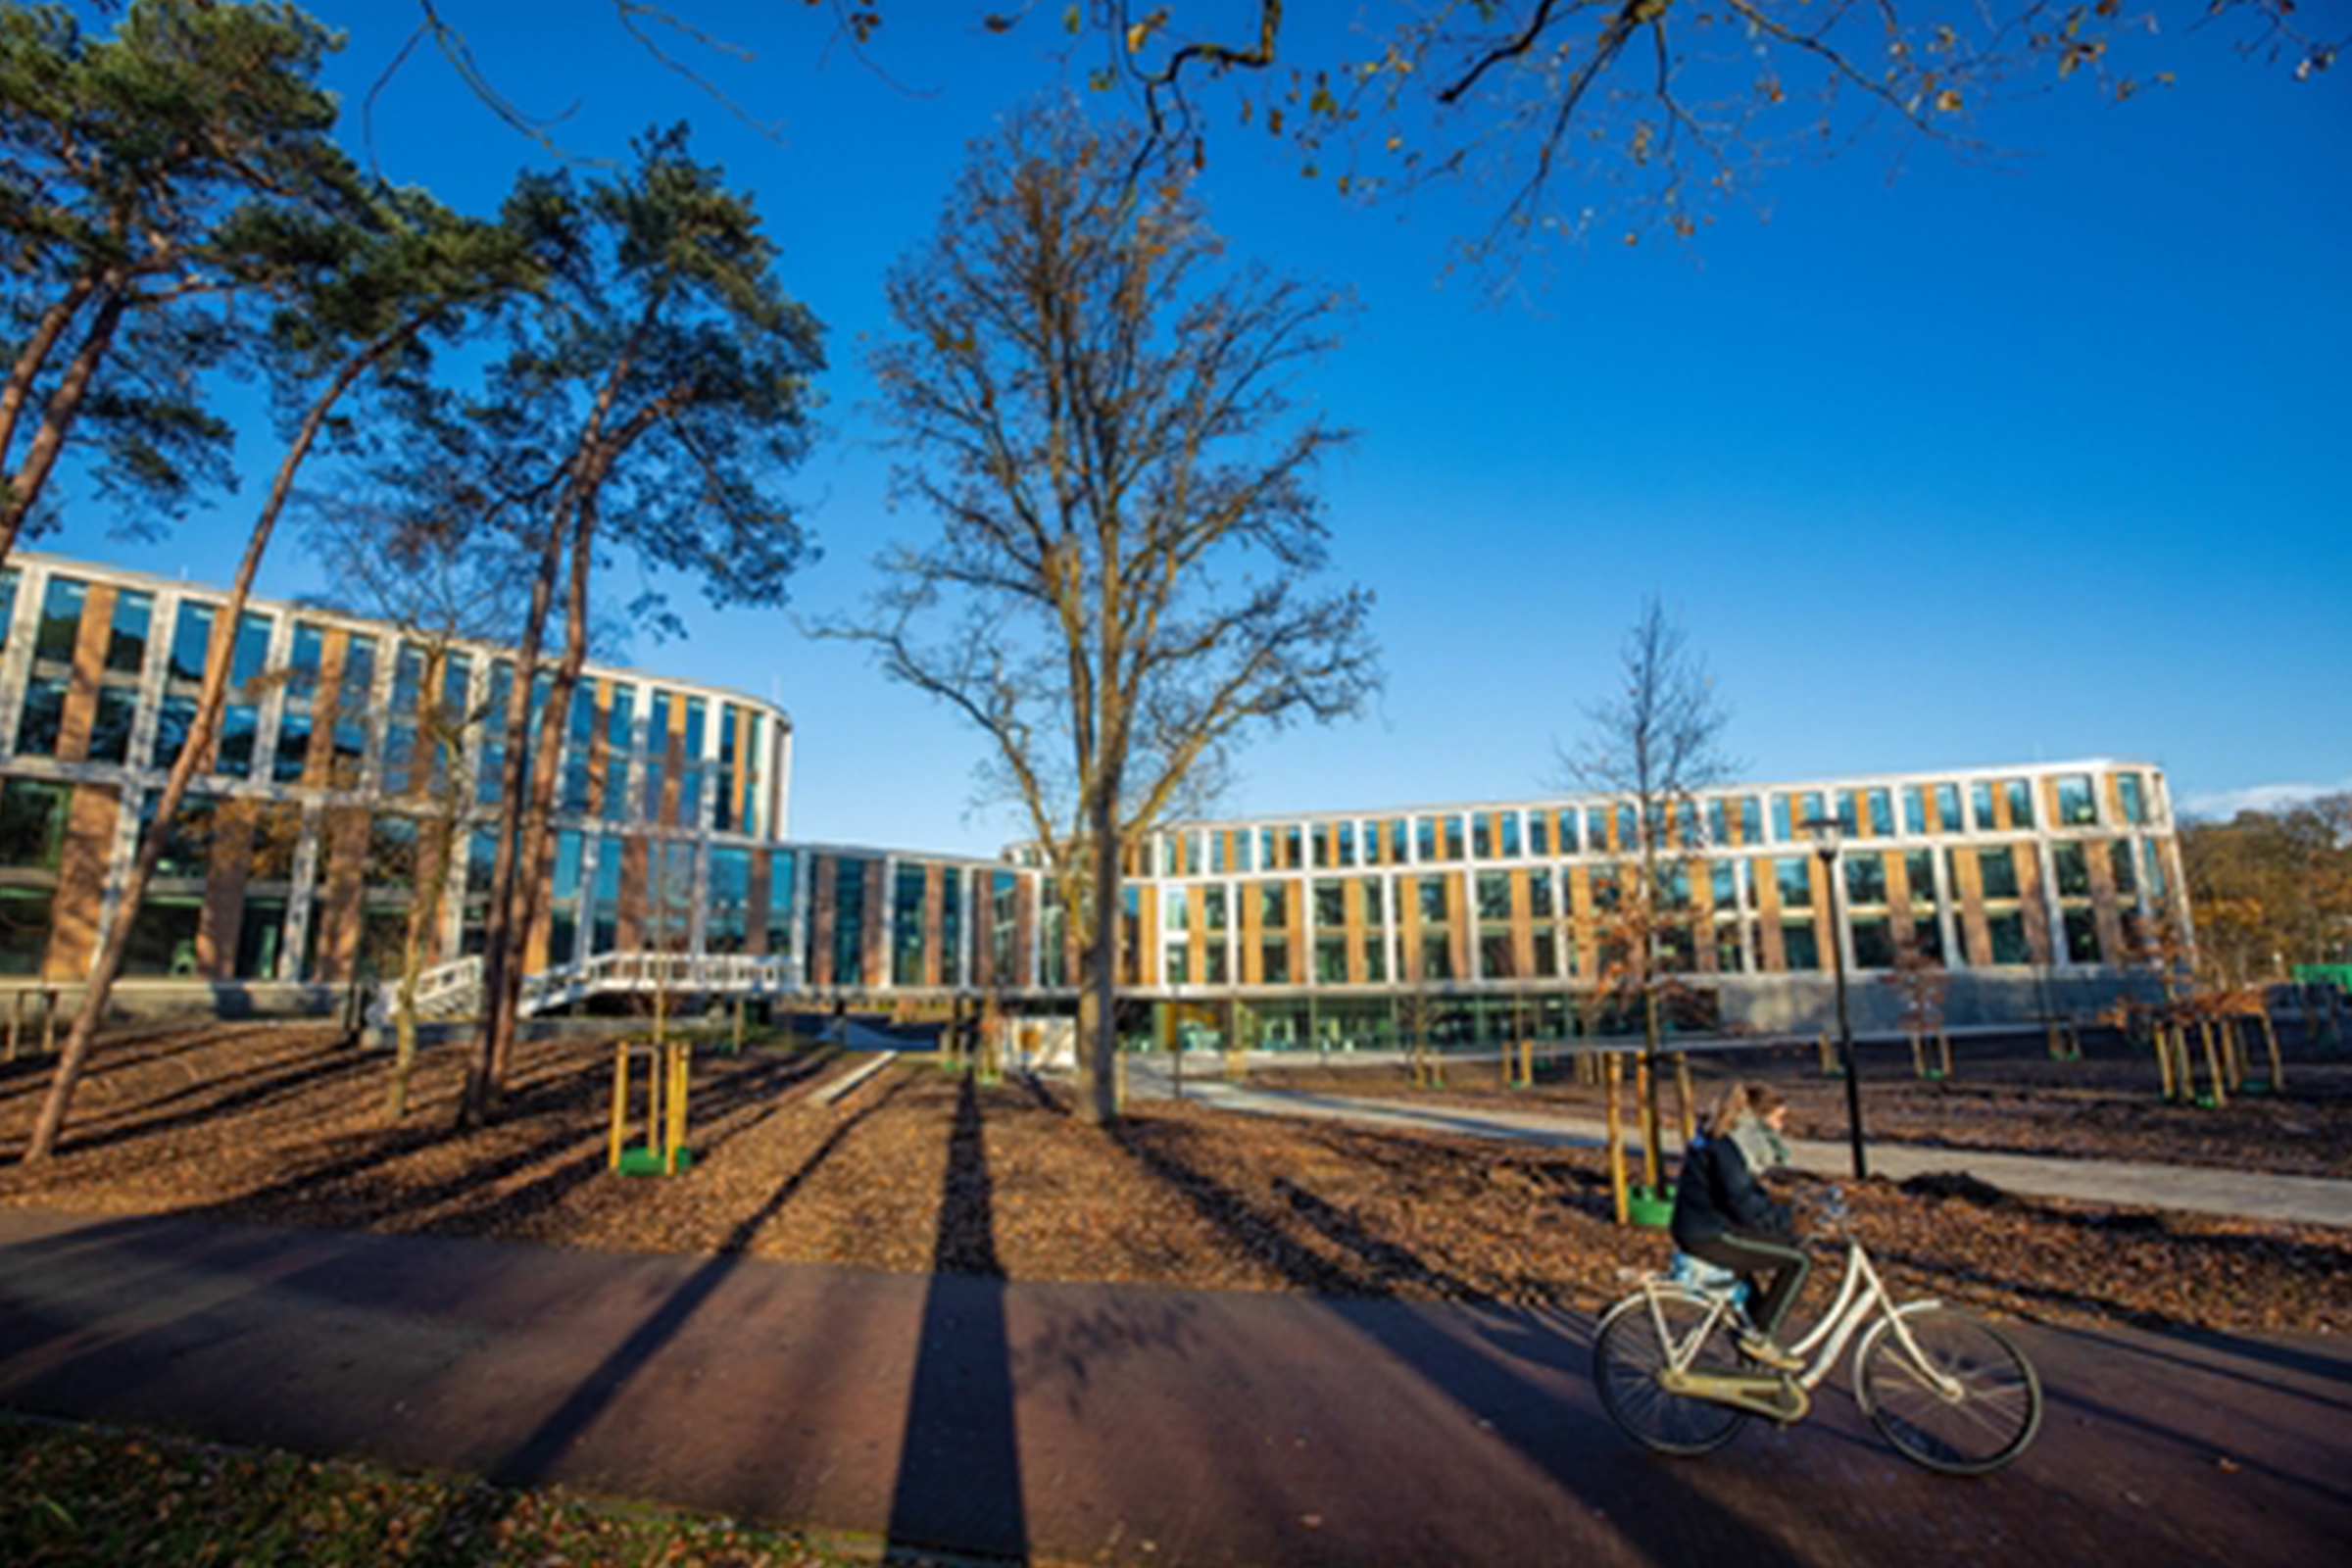 The Maria Montessori building of the Faculty of Social Sciences at the Radboud University